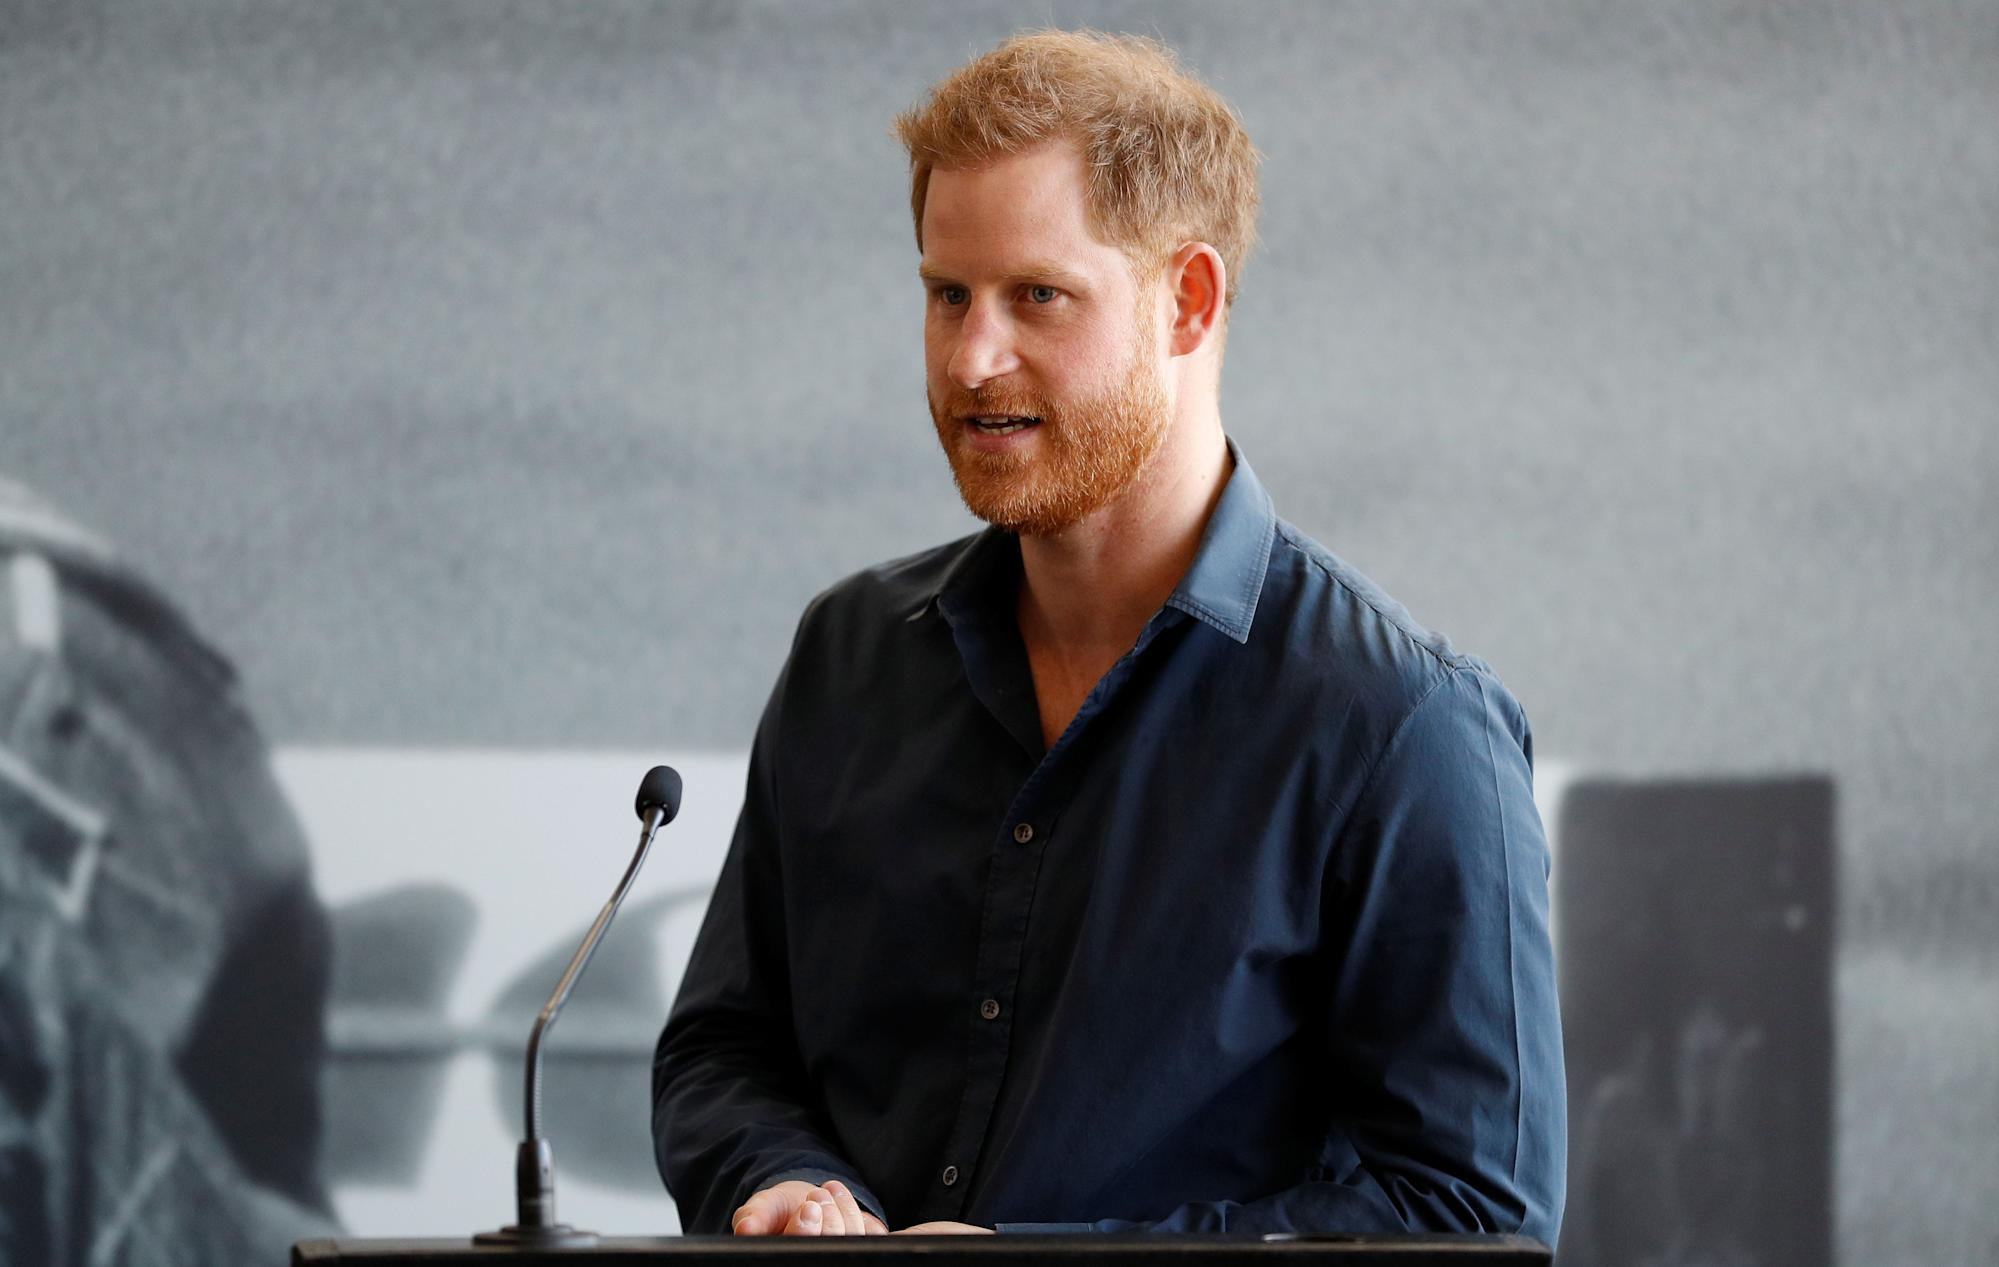 Prince Harry says Meghan Markle was the reason he started therapy: 'She could tell that I was hurting'